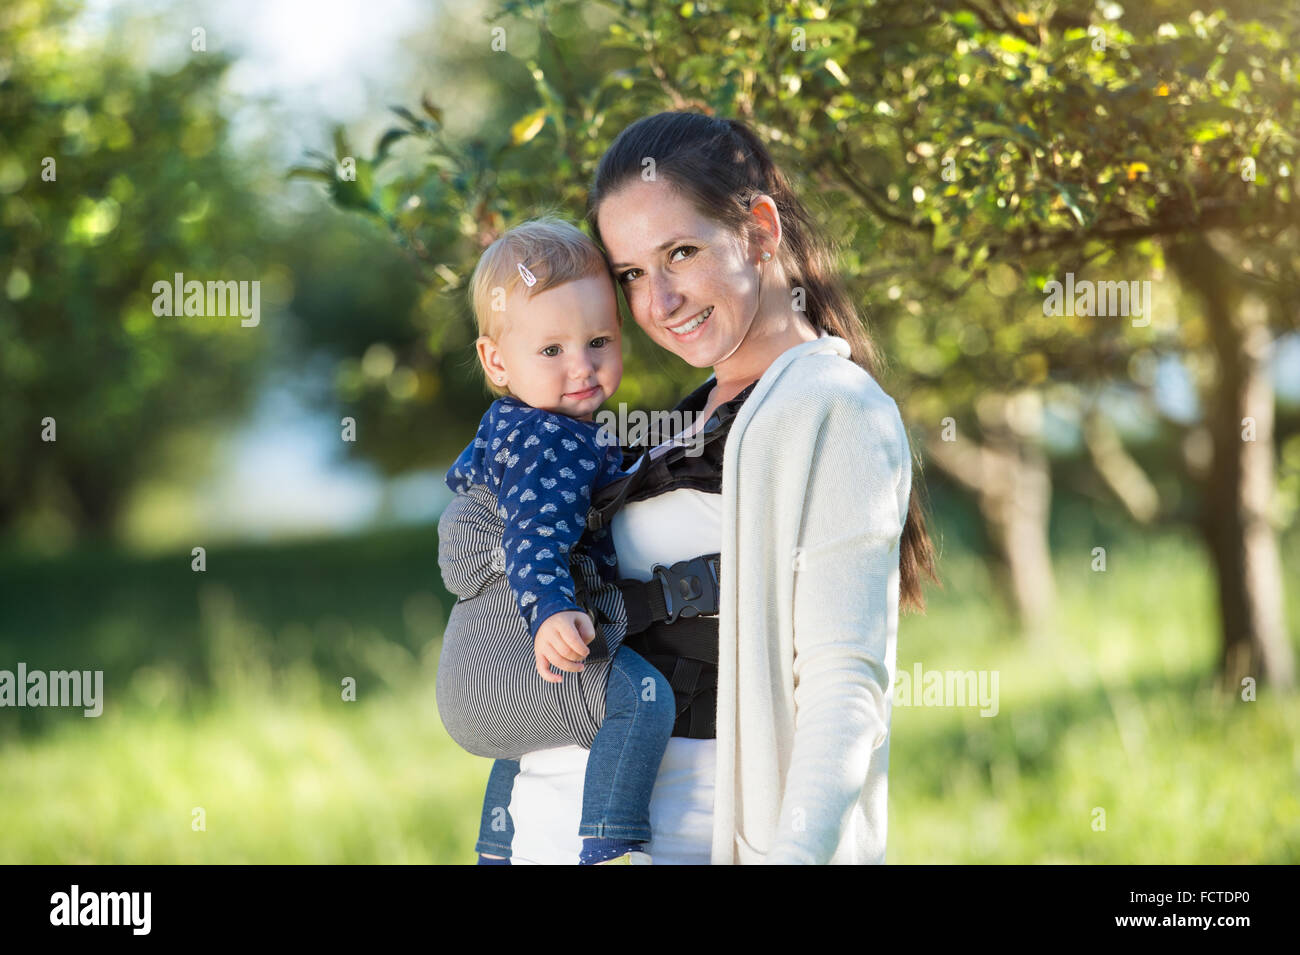 Happy mother and her daughter Photo Stock